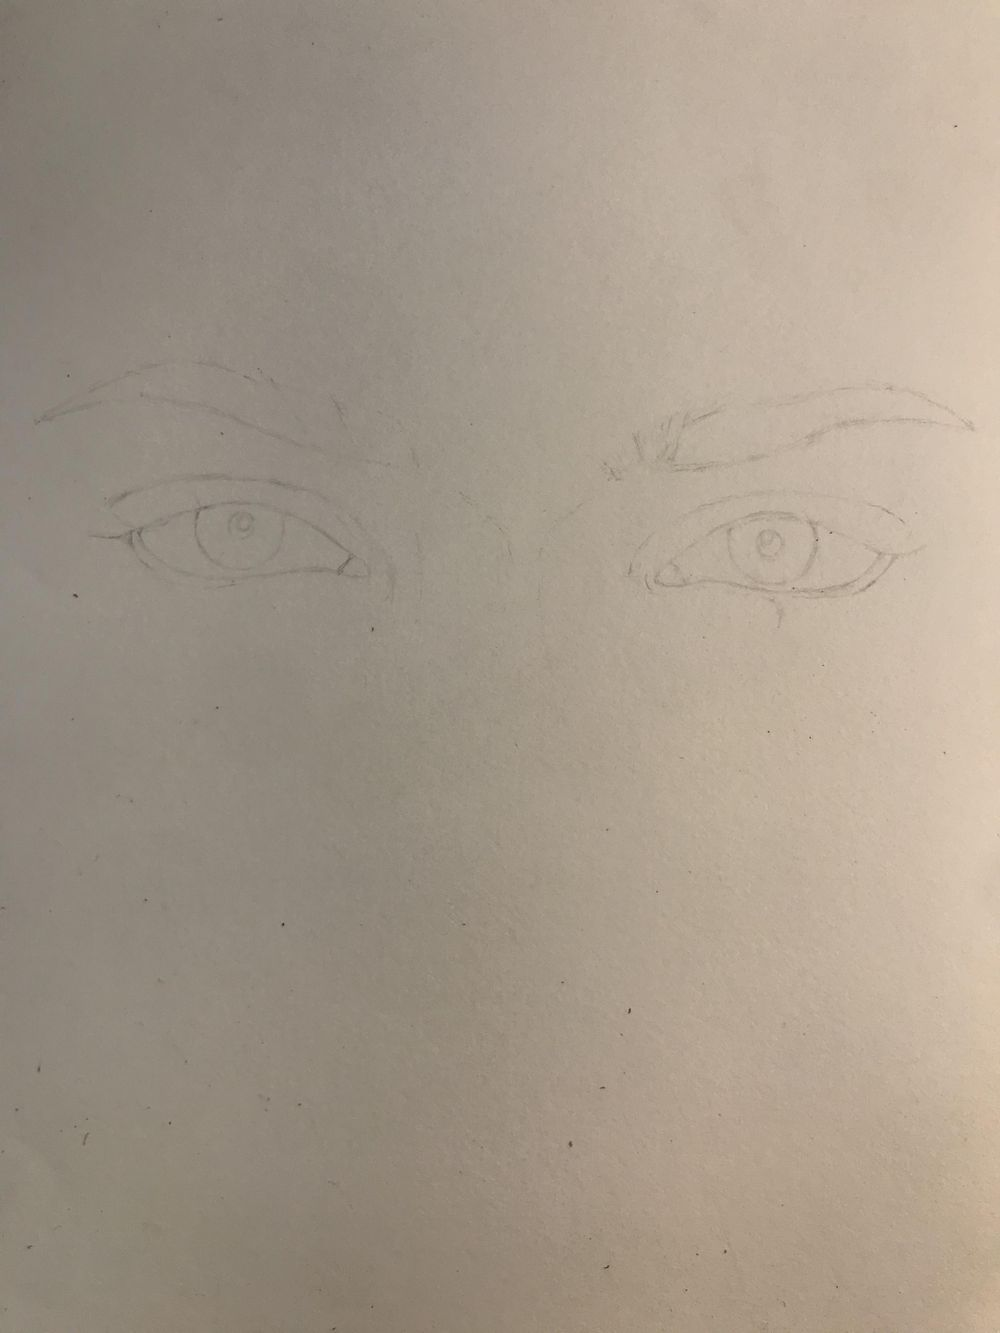 Eyes Sketch - image 1 - student project